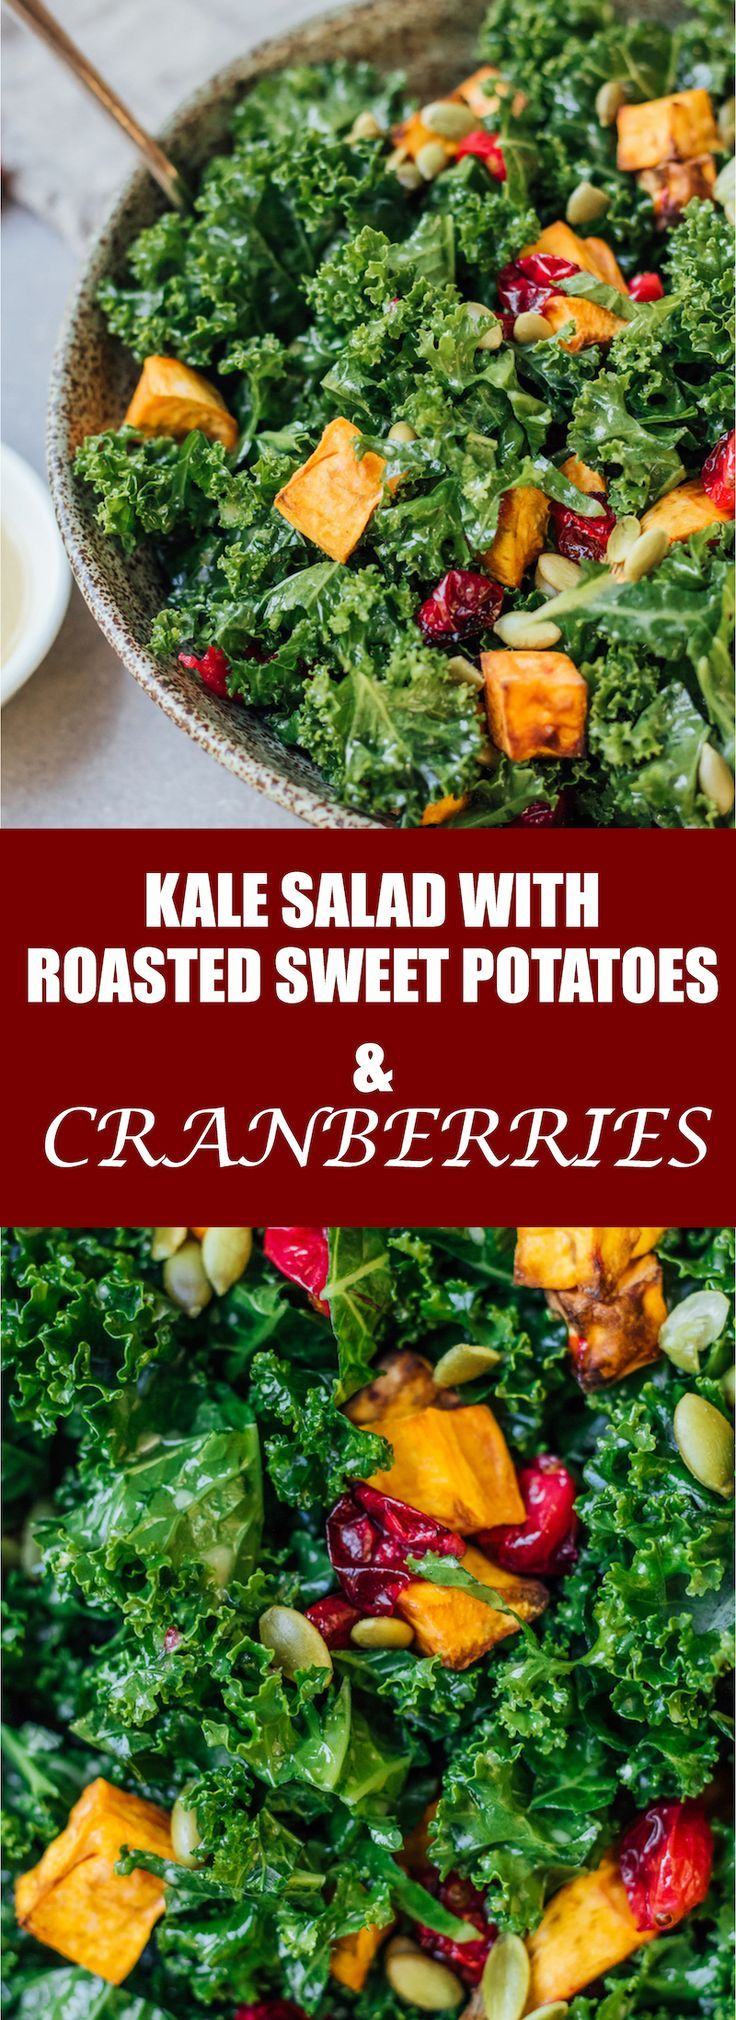 This kale salad is healthy, yet comforting. It's loaded with roasted sweet potatoes and roasted cranberries!